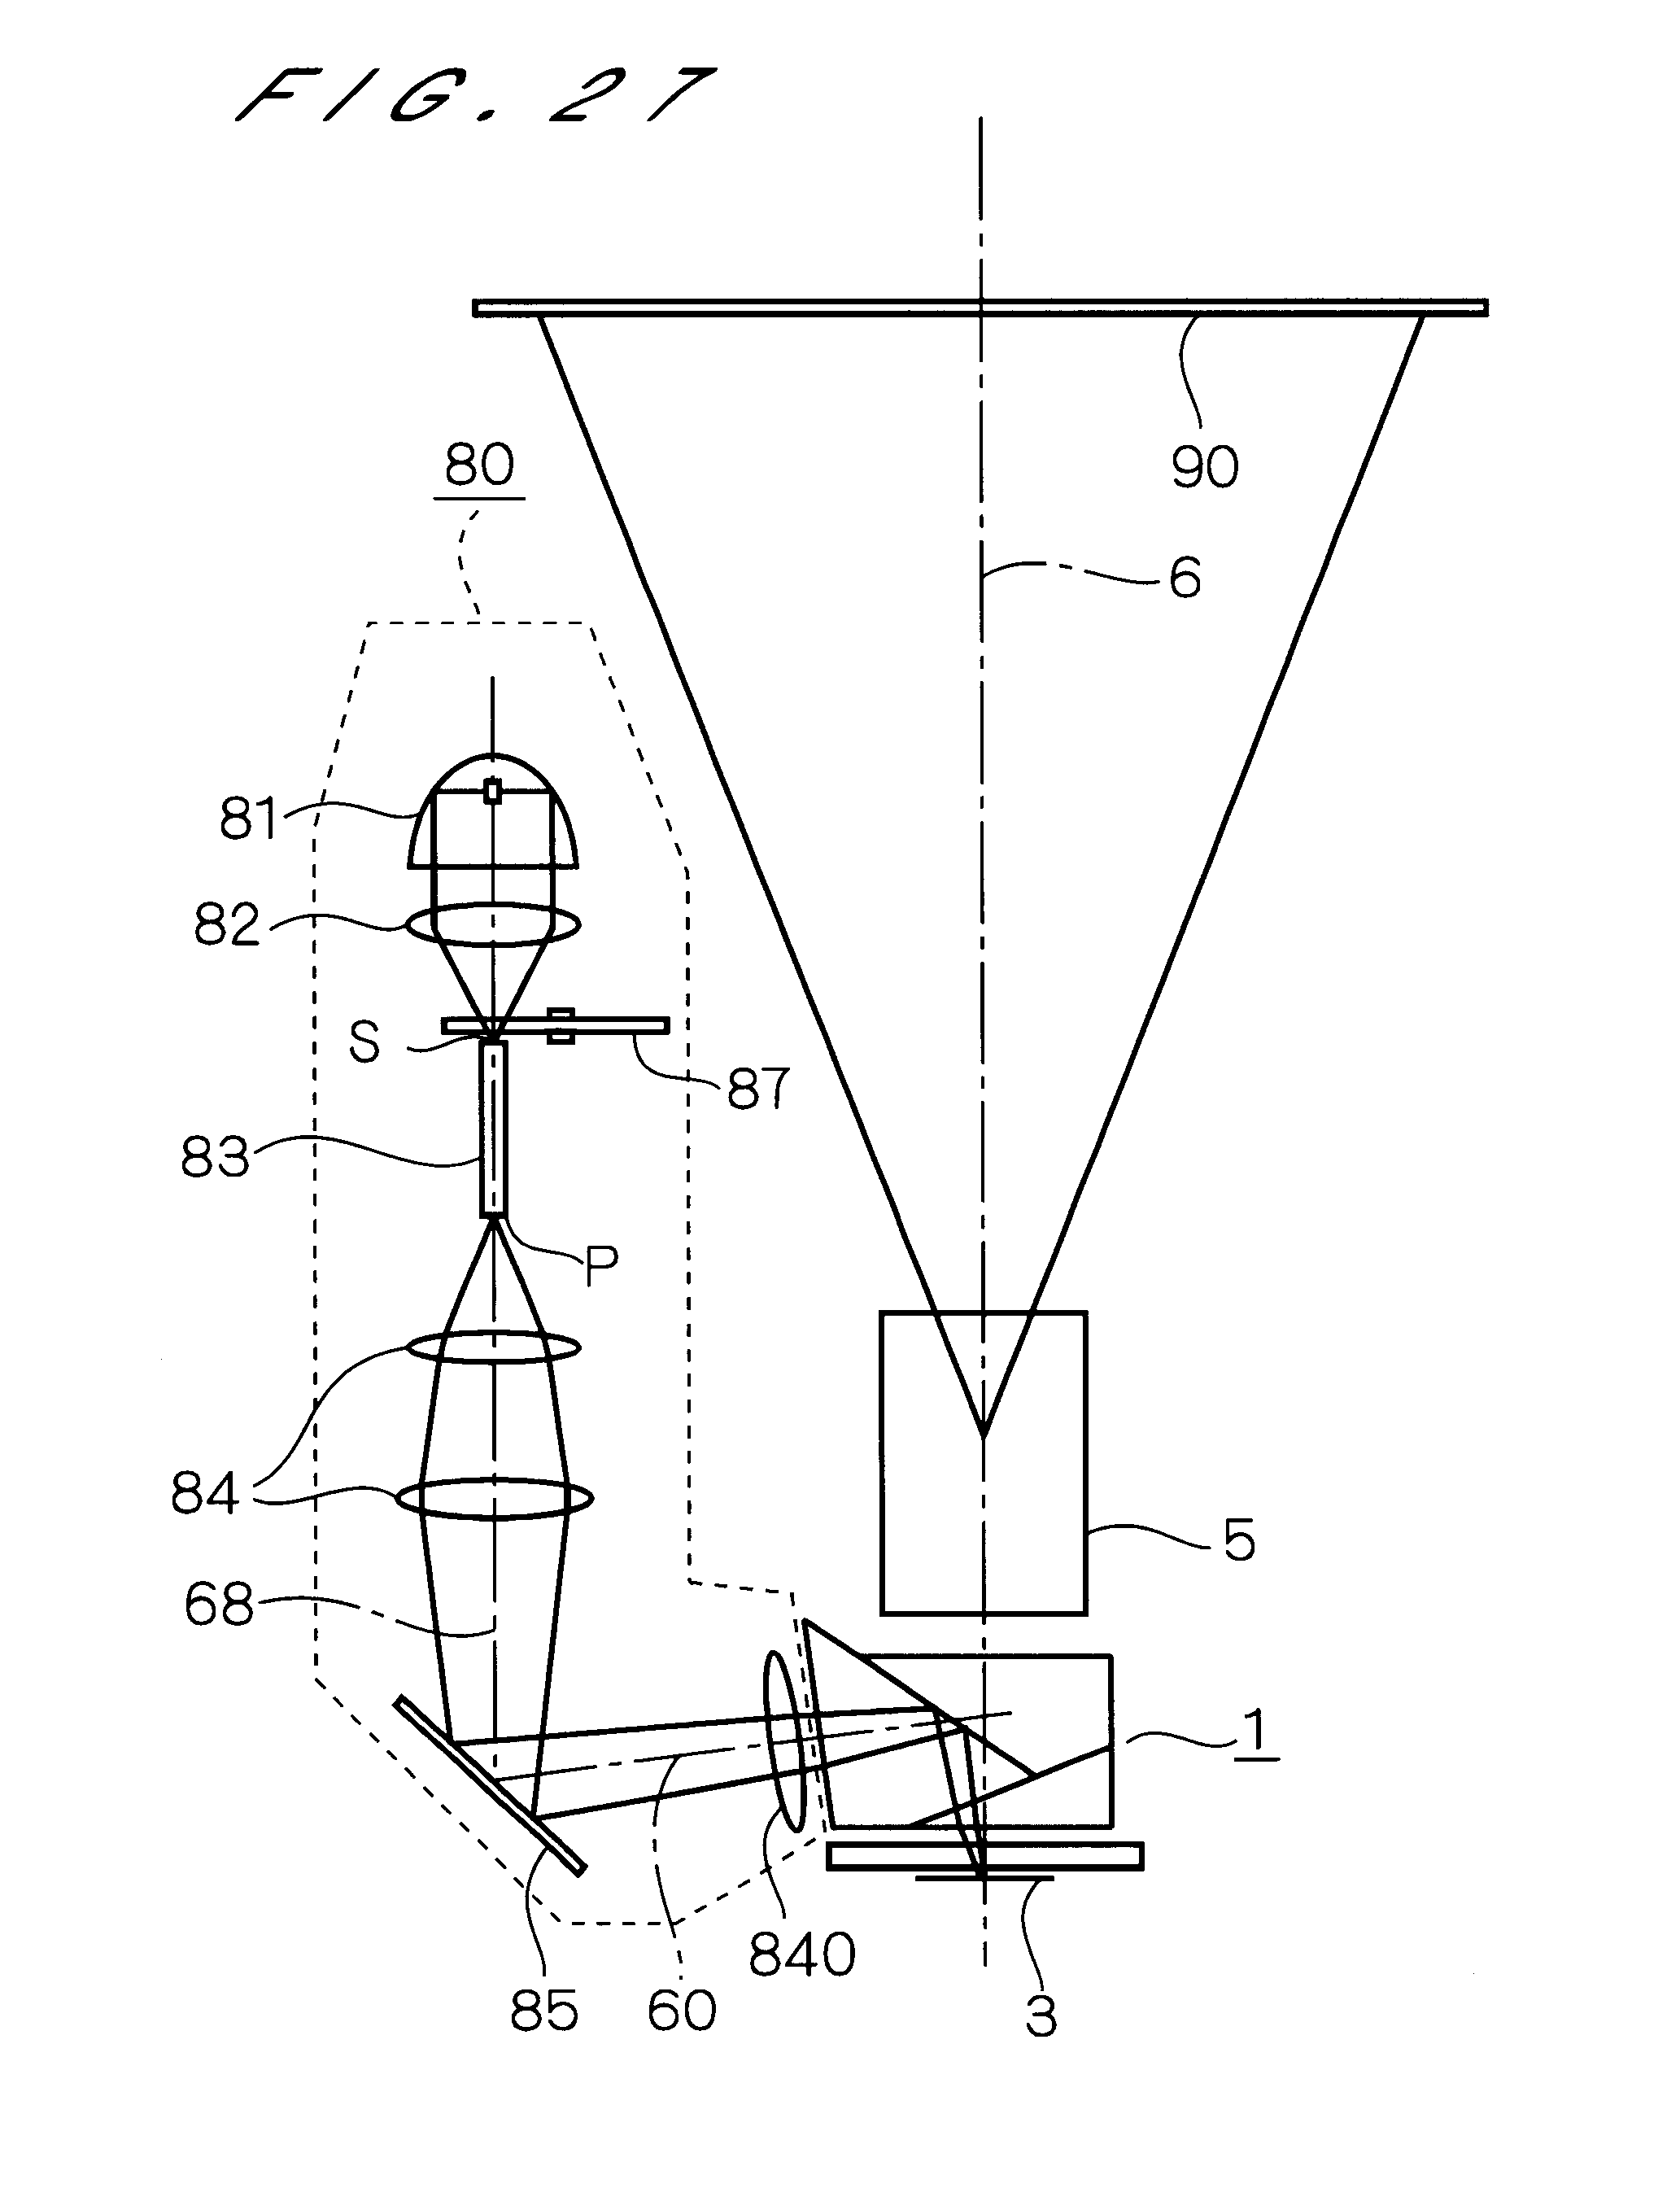 US6349006B1 - Prism having two inner surfaces and outer ... on